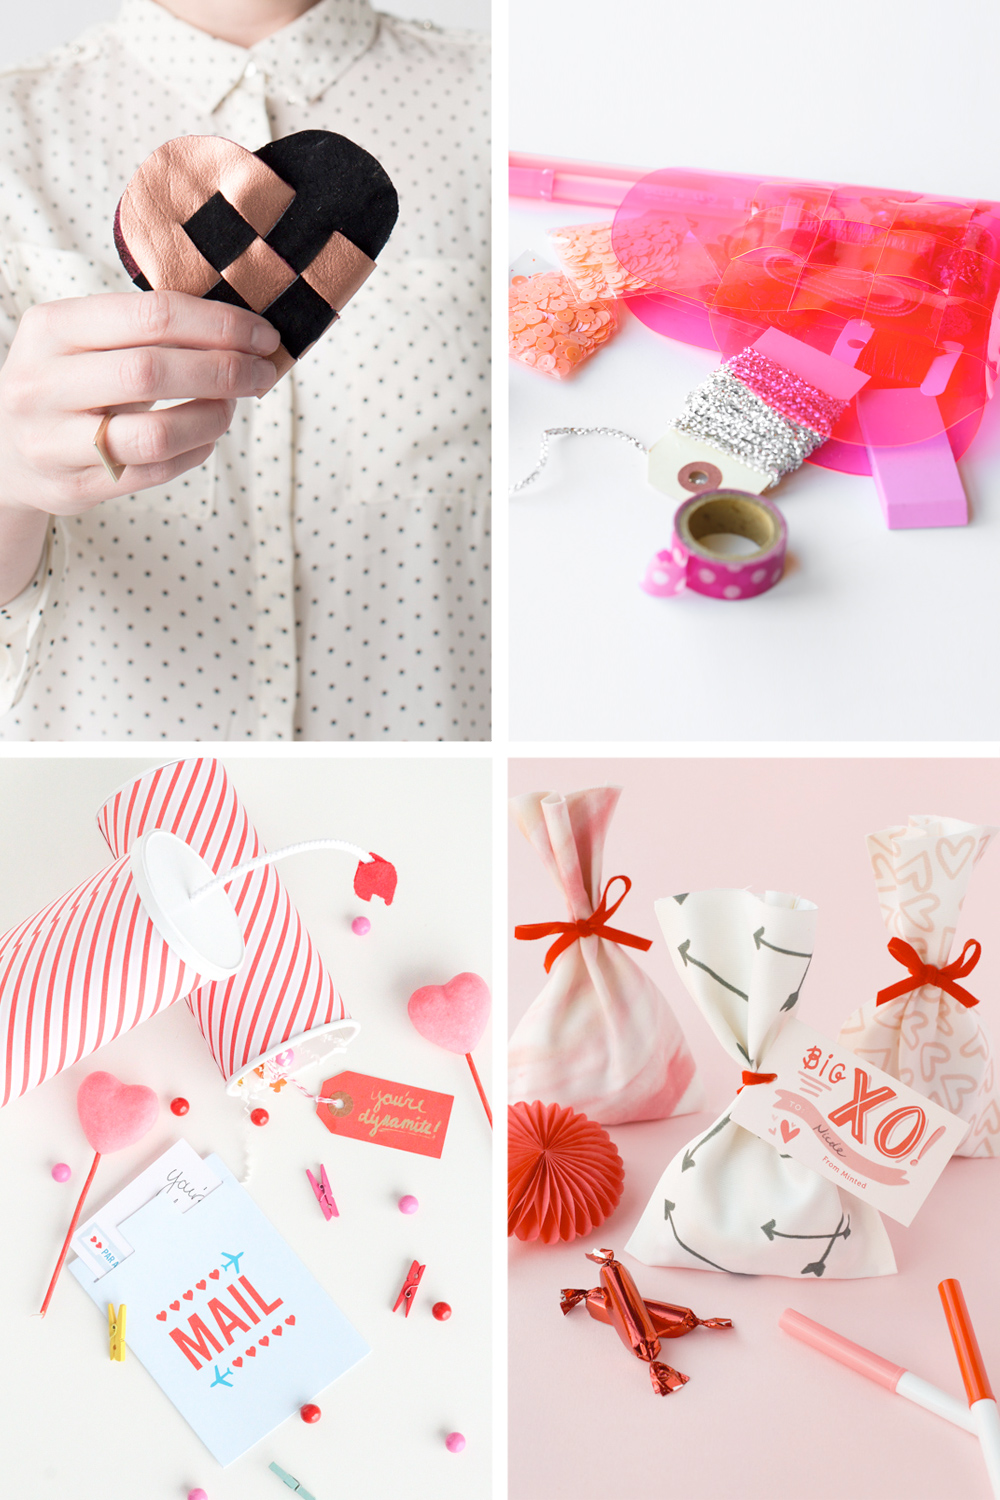 DIY Roundup Valentine's Day – Sew DIY